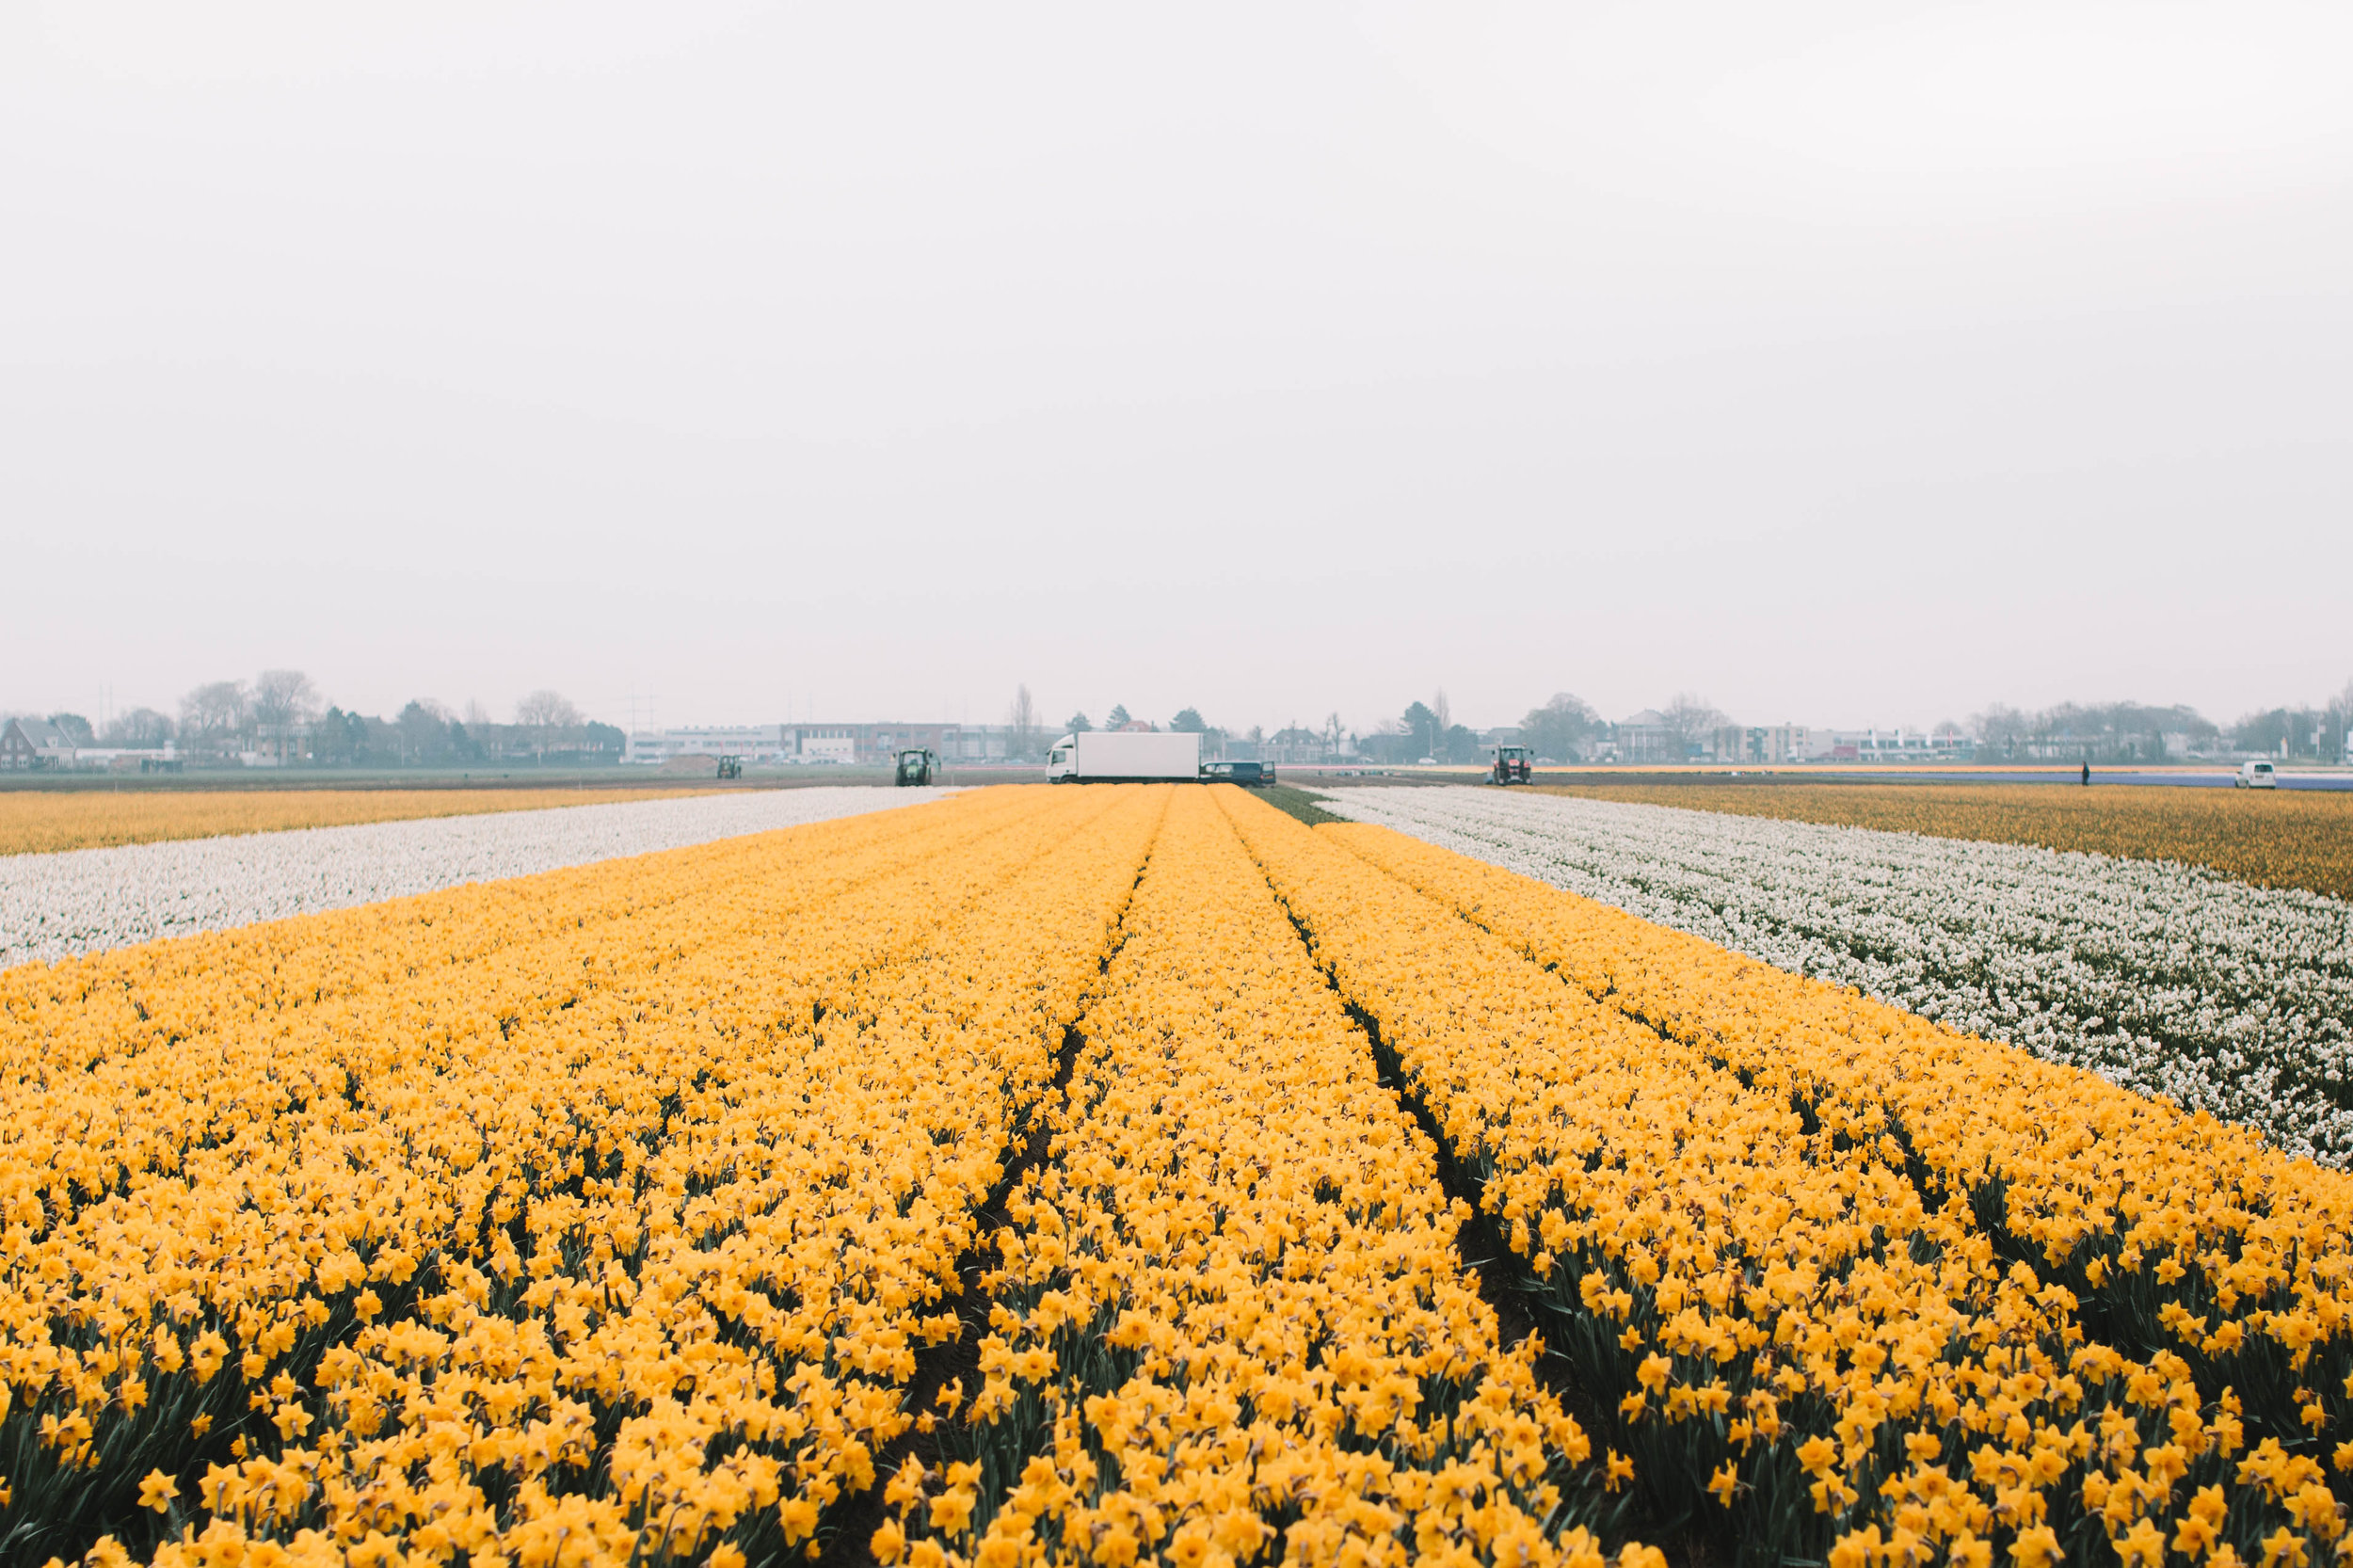 daffodil and tulip farmers at work